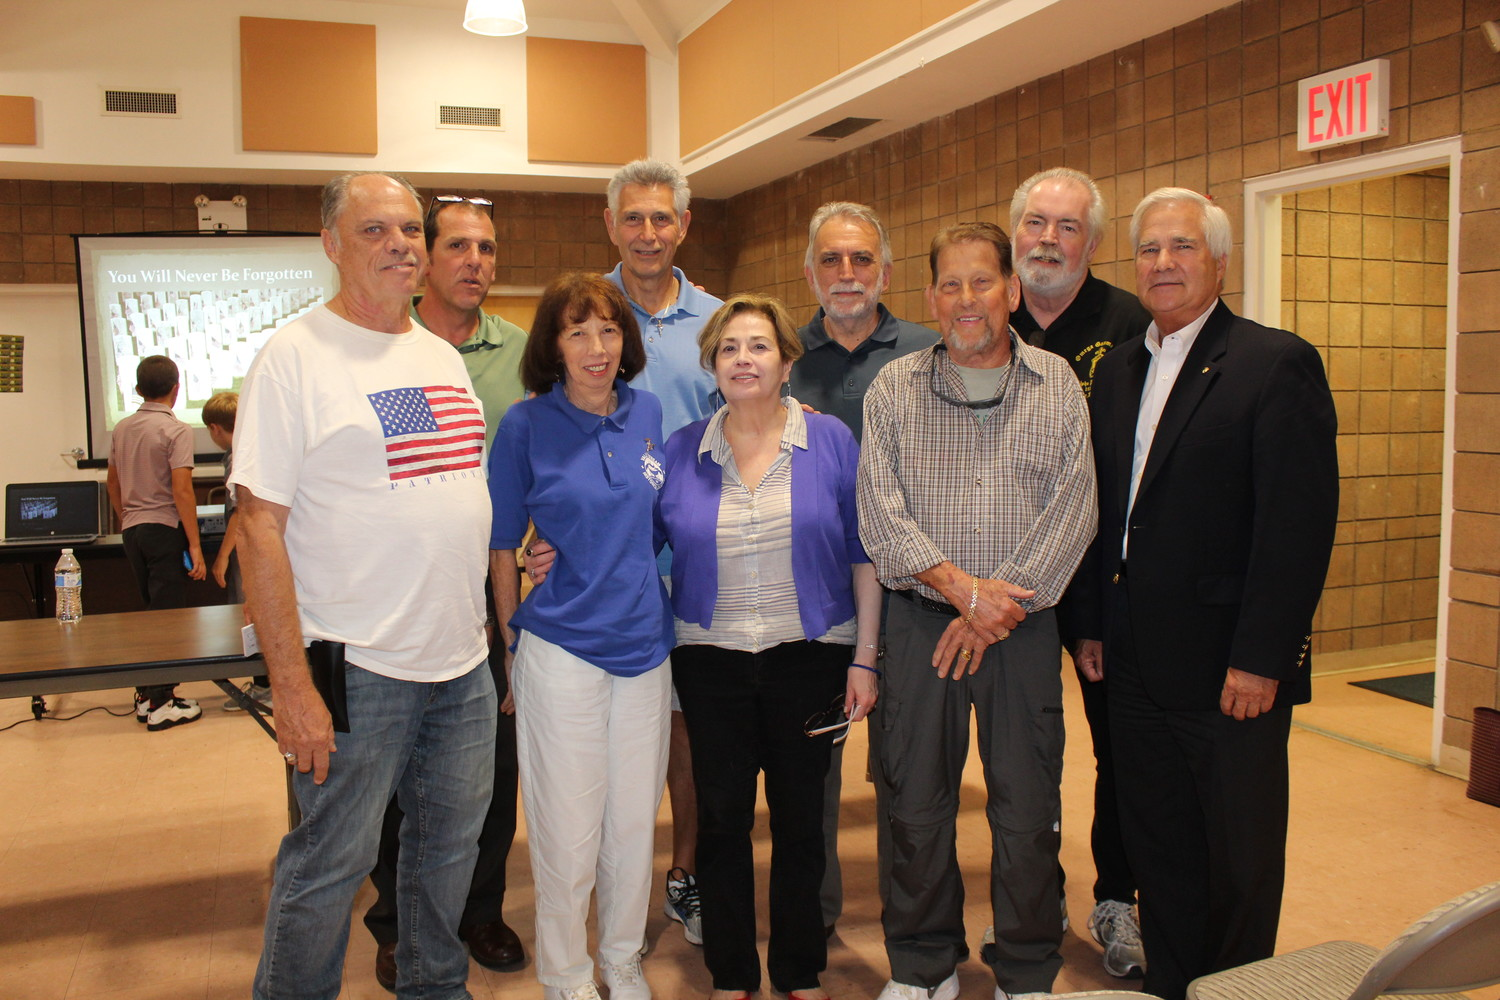 Central High School alumni and local veterans attended the Sept. 27 meeting of the Valley Stream Historical Society to learn about Chris Critchley's research. Critchley was second from left.